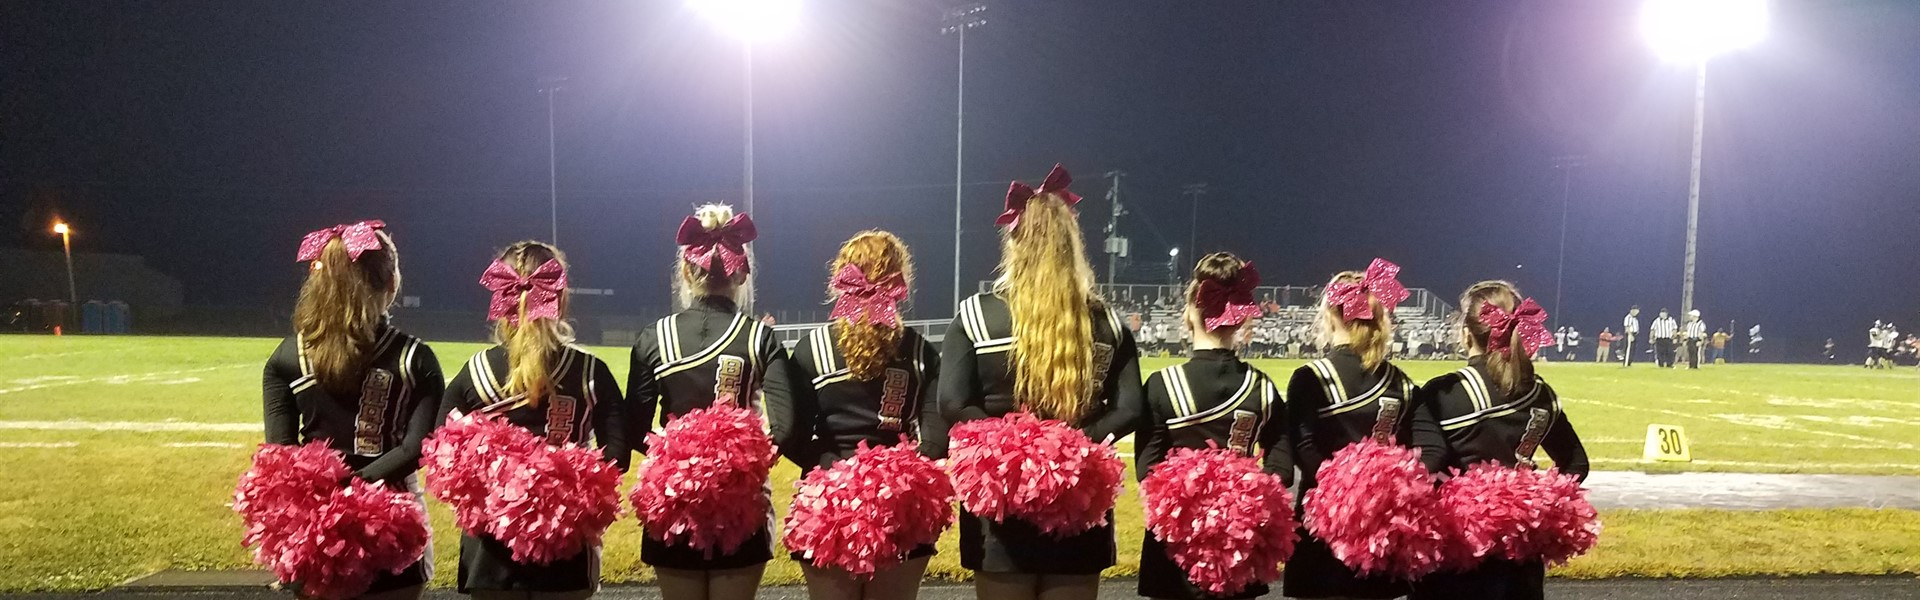 Bears and Breast Cancer Awareness